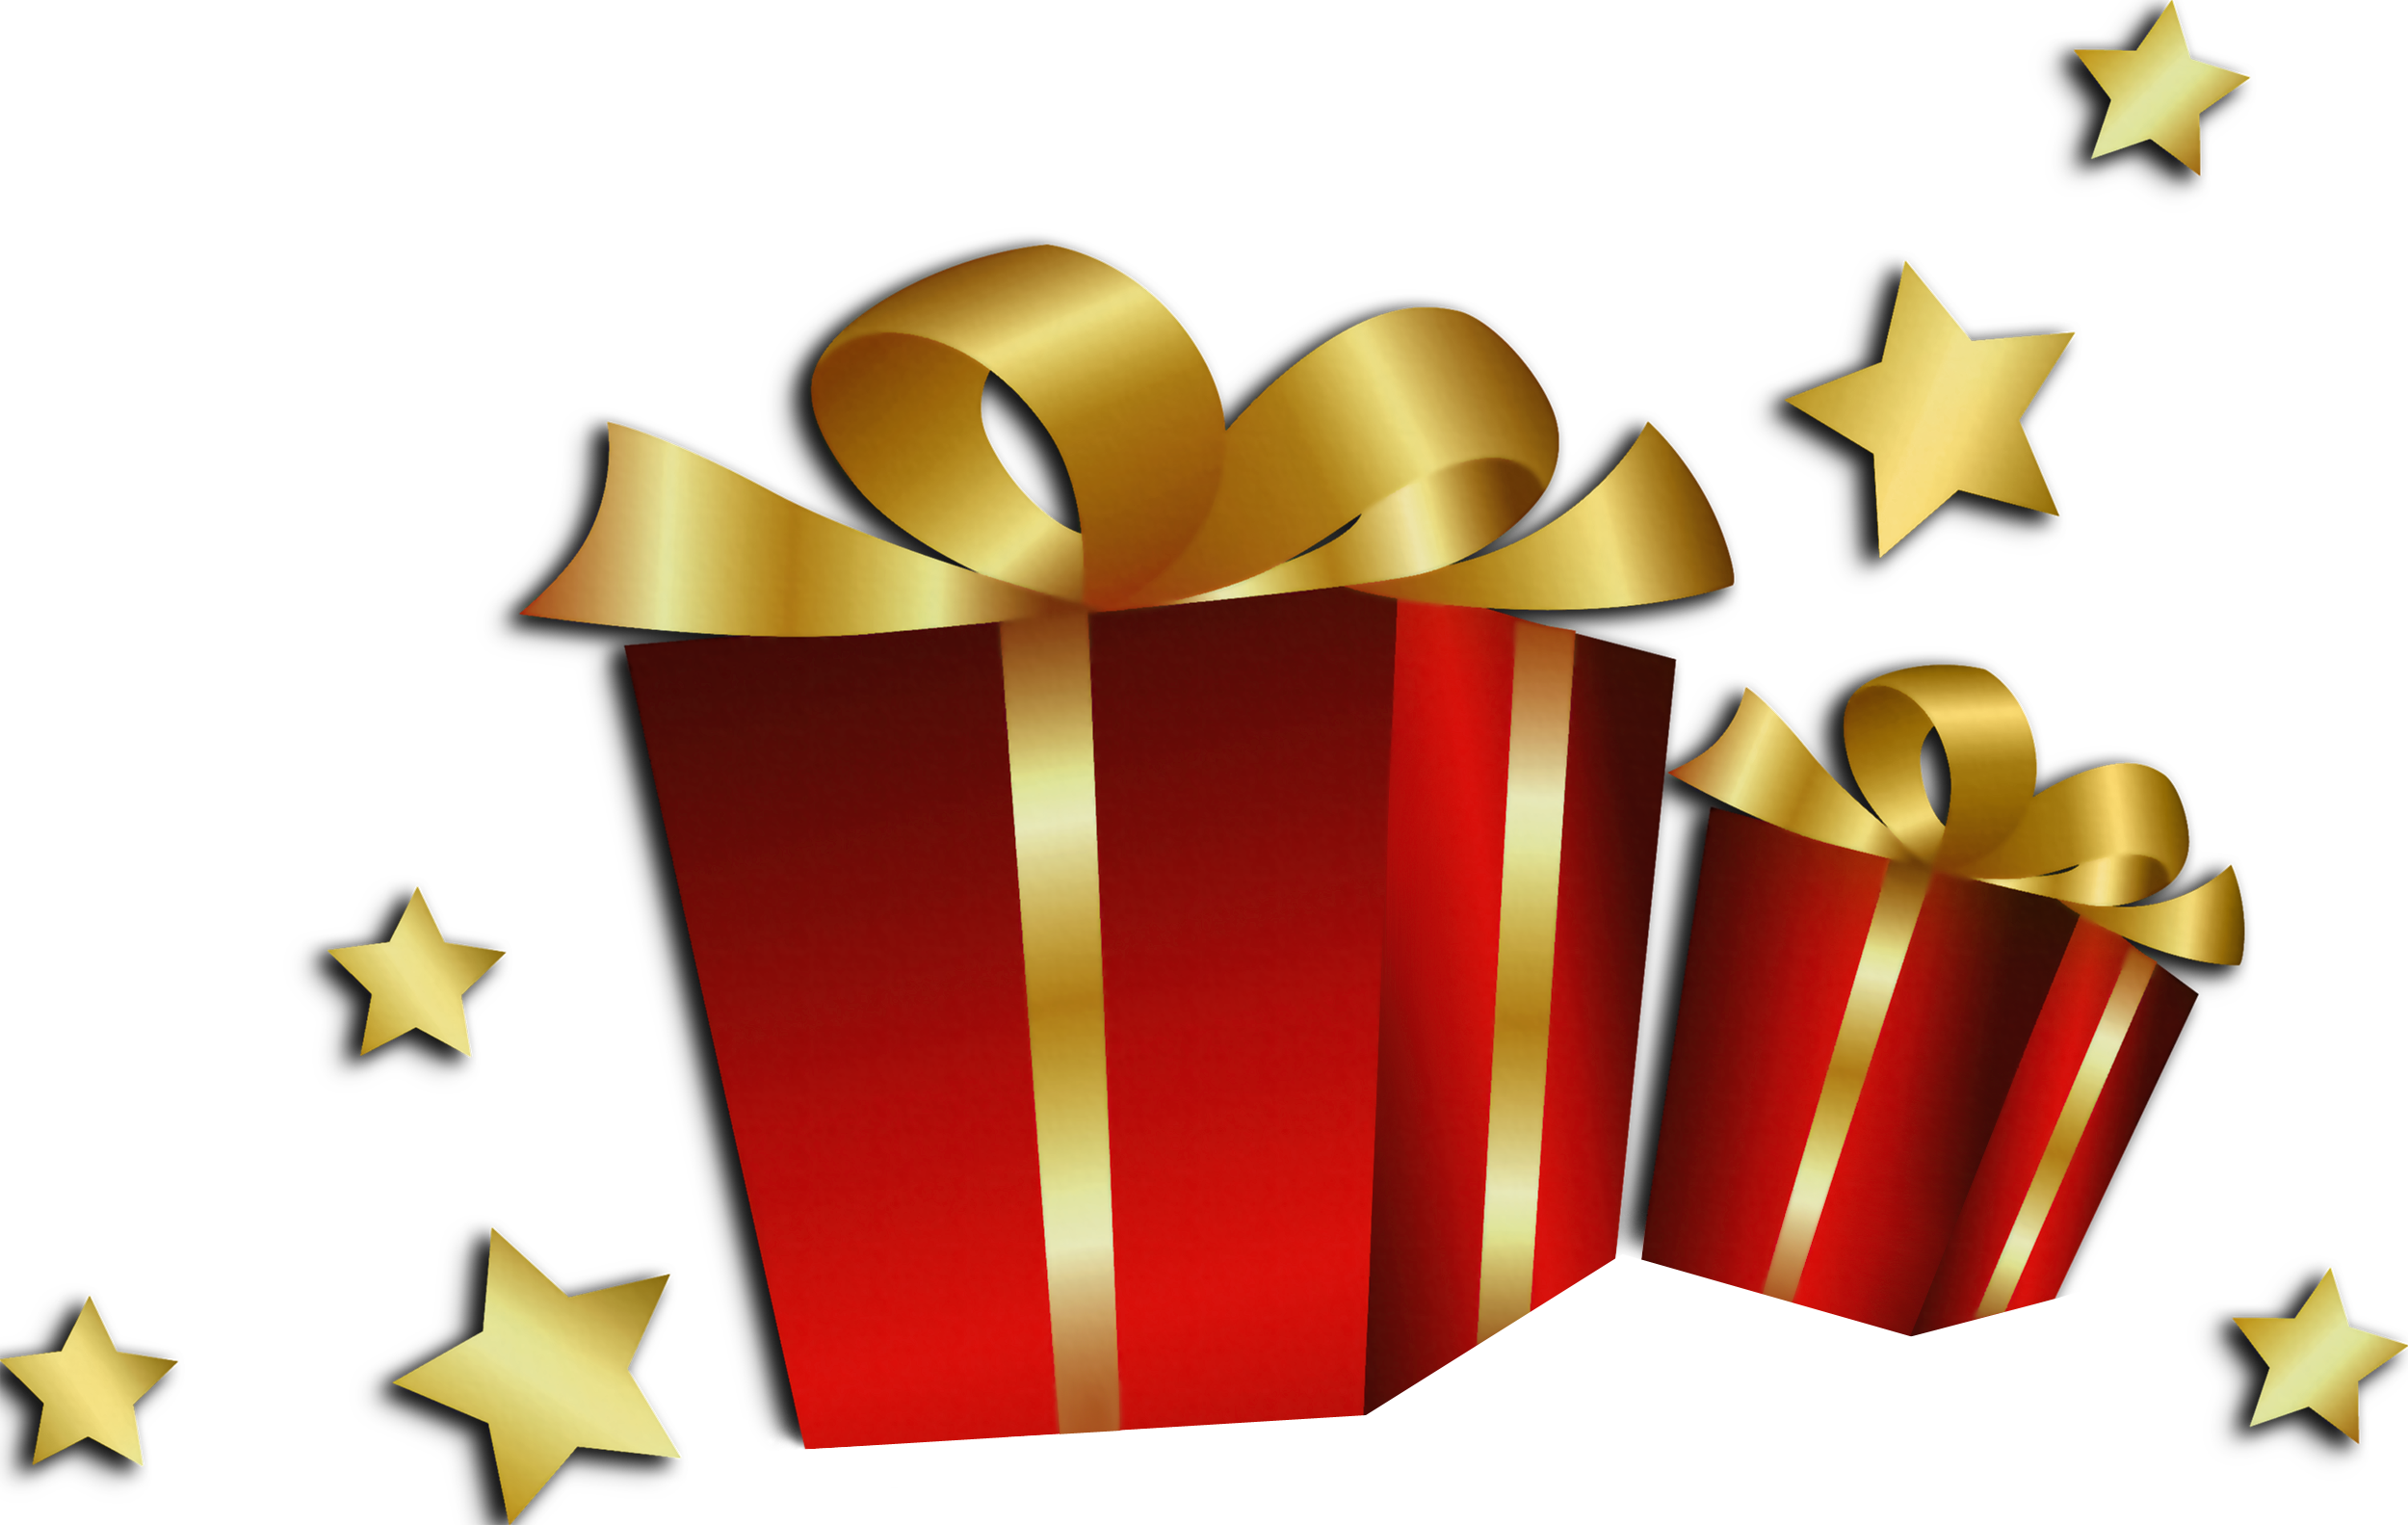 Christmas present transparent png. Red gift boxes gallery